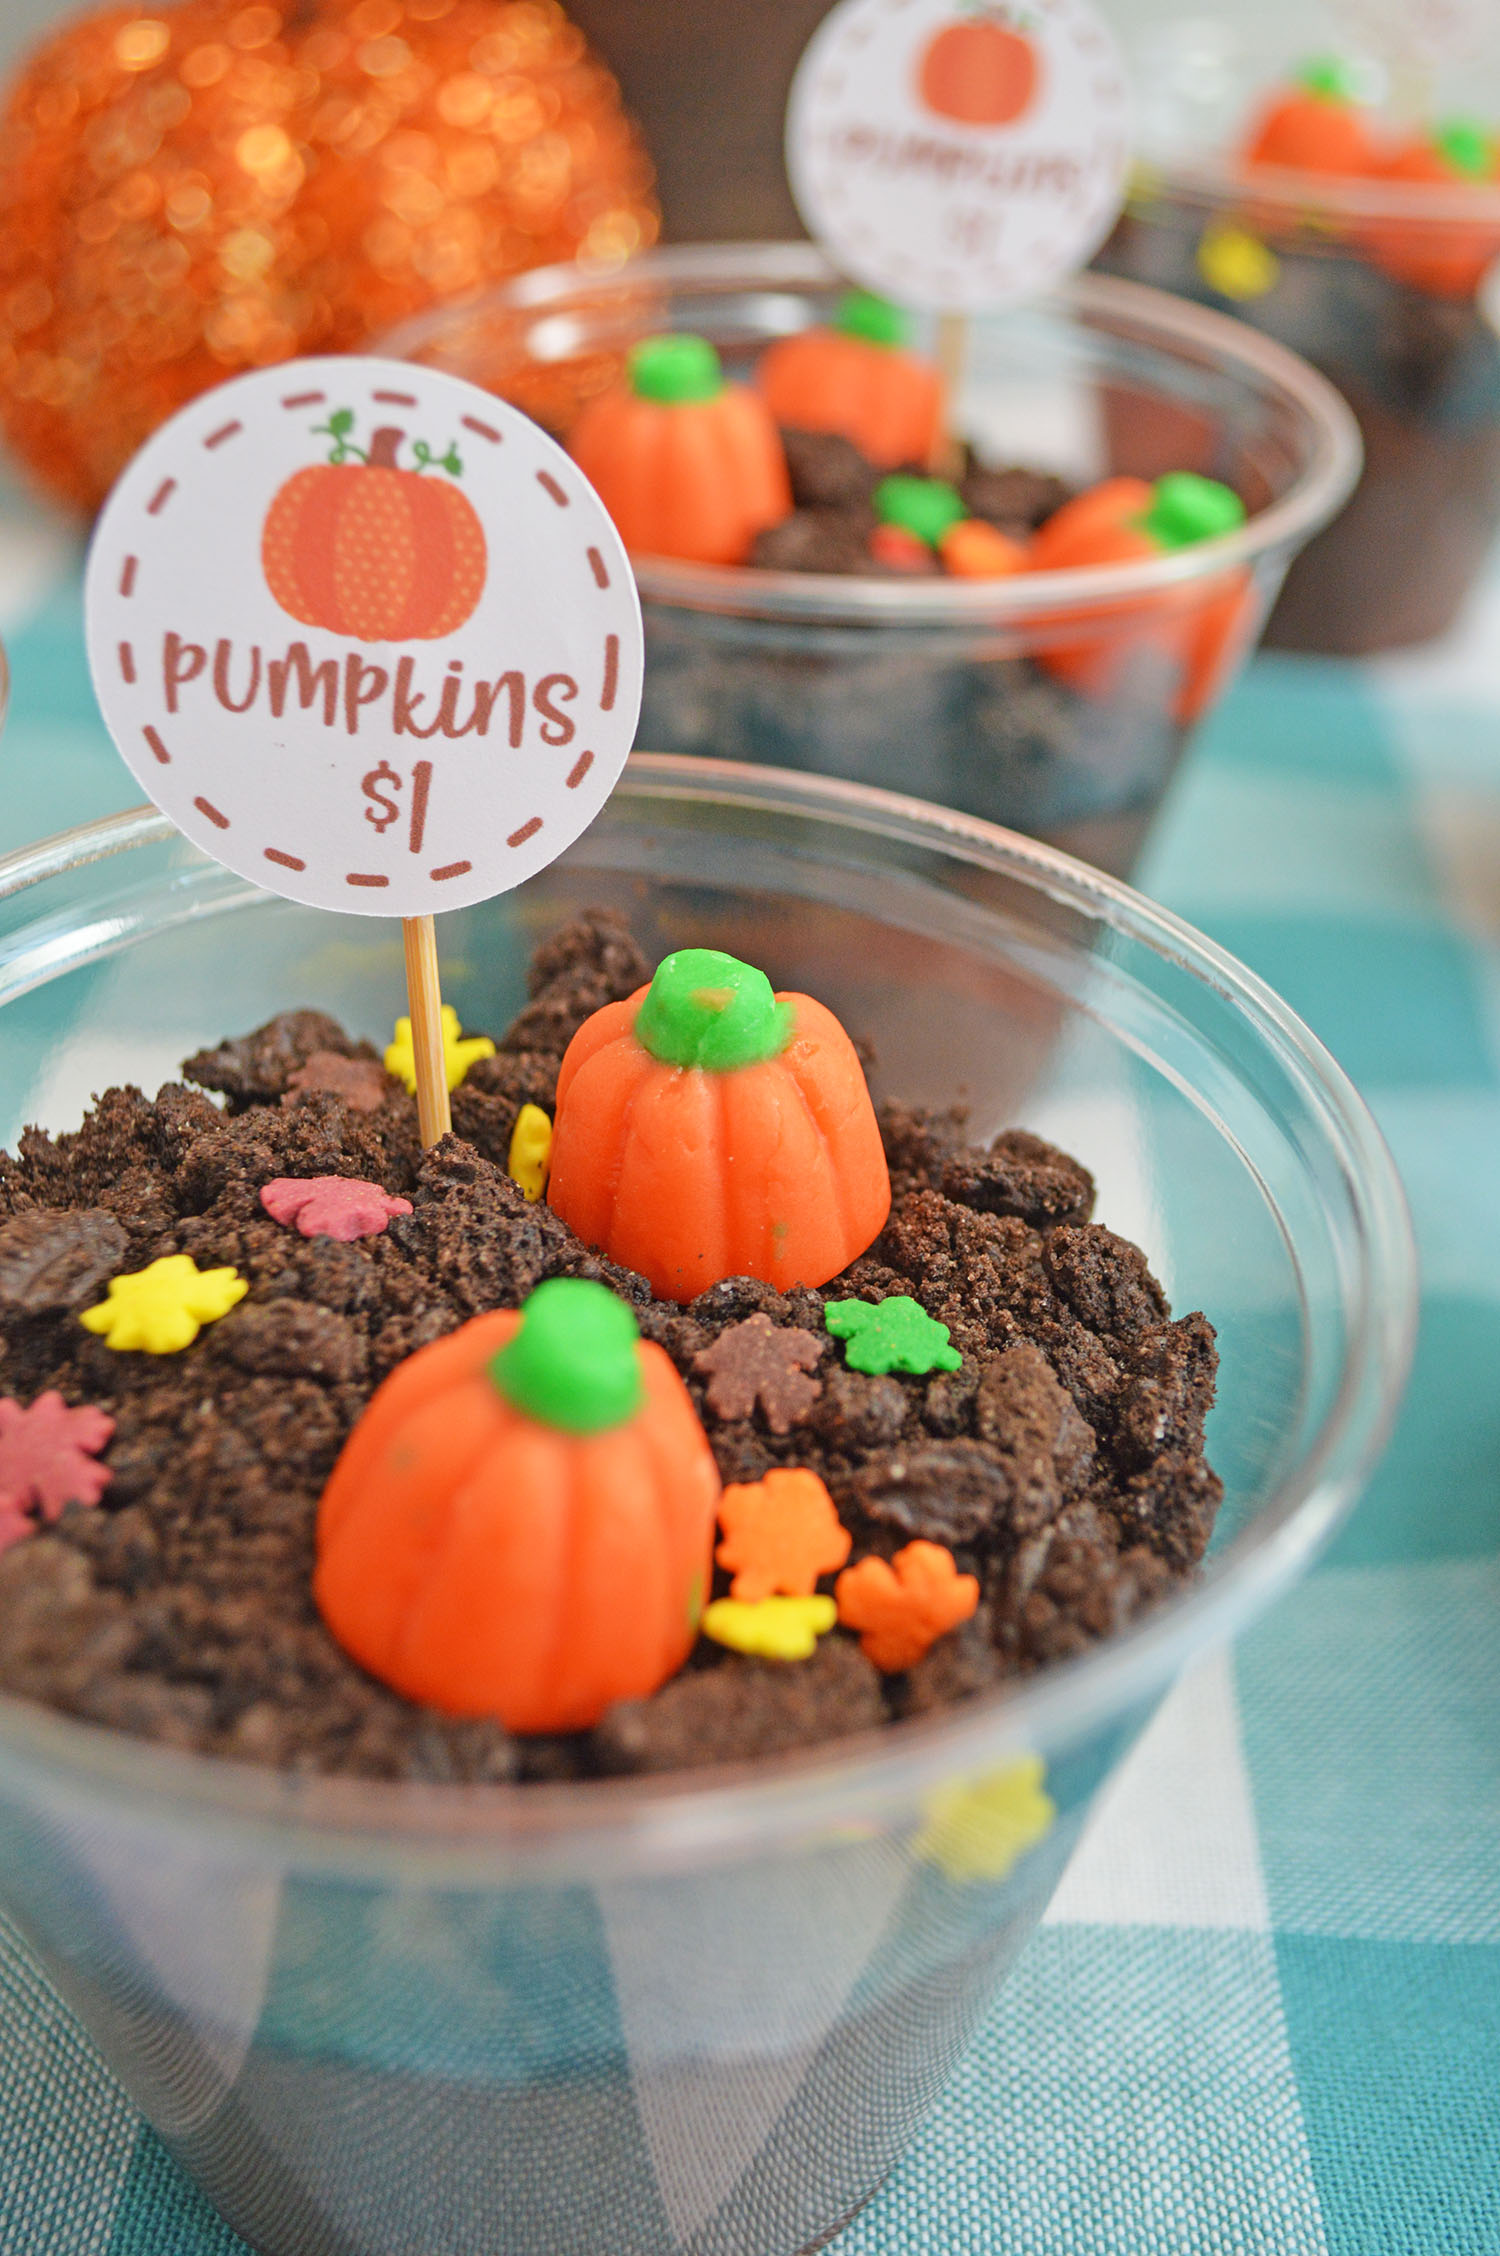 Make Pumpkin Patch Pudding Cups (with Free Printable!)